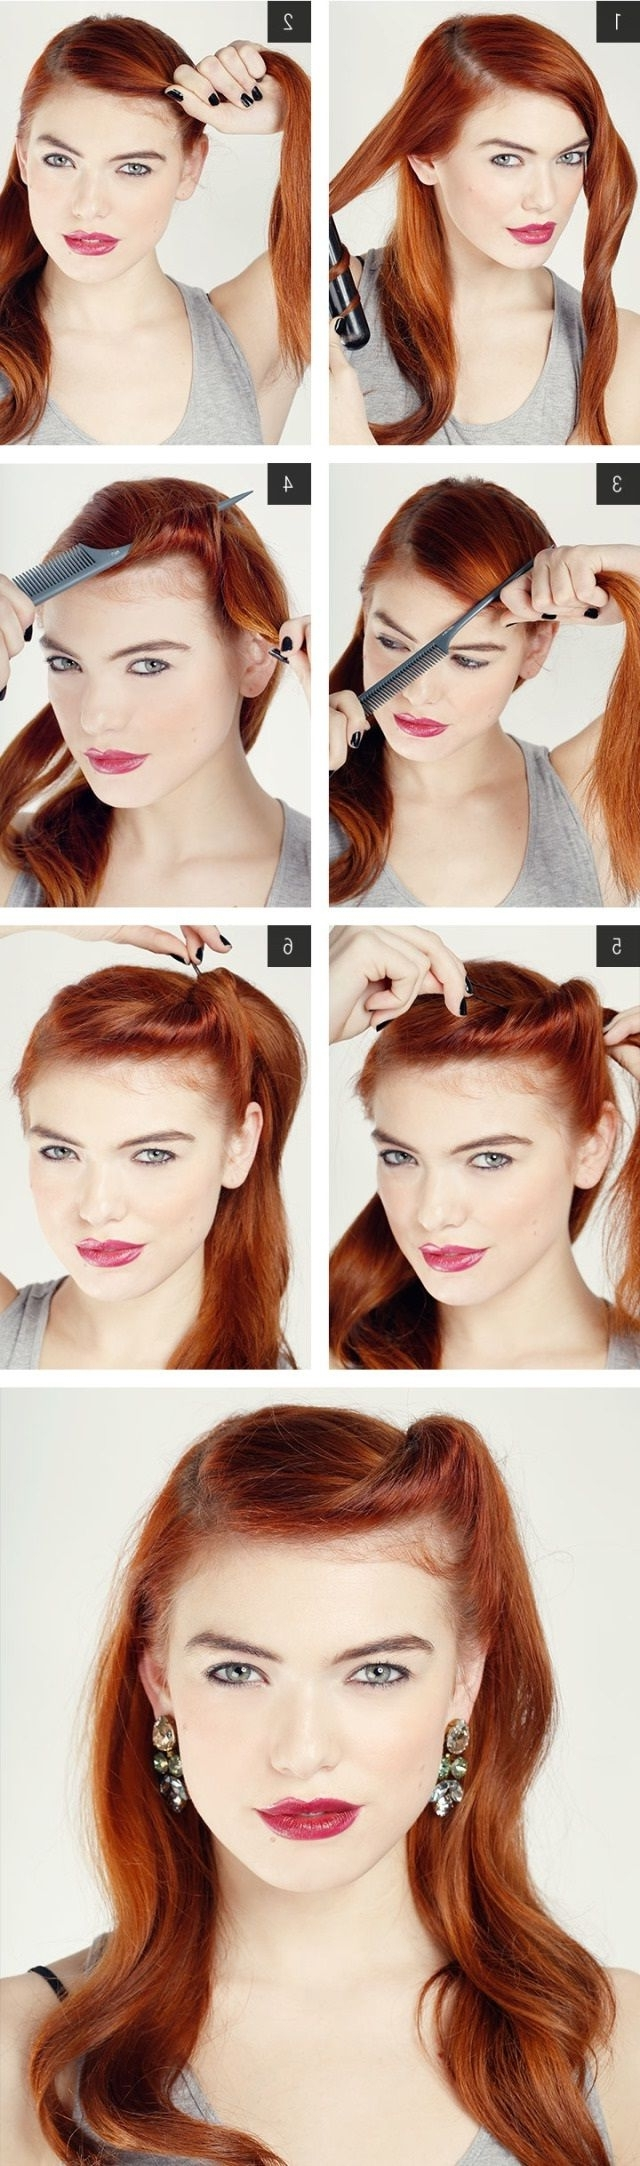 7 Easy Retro Hair Tutorials From Pinterest | Retro Hair, Retro And Inside Easy Vintage Updo Hairstyles (Gallery 7 of 15)